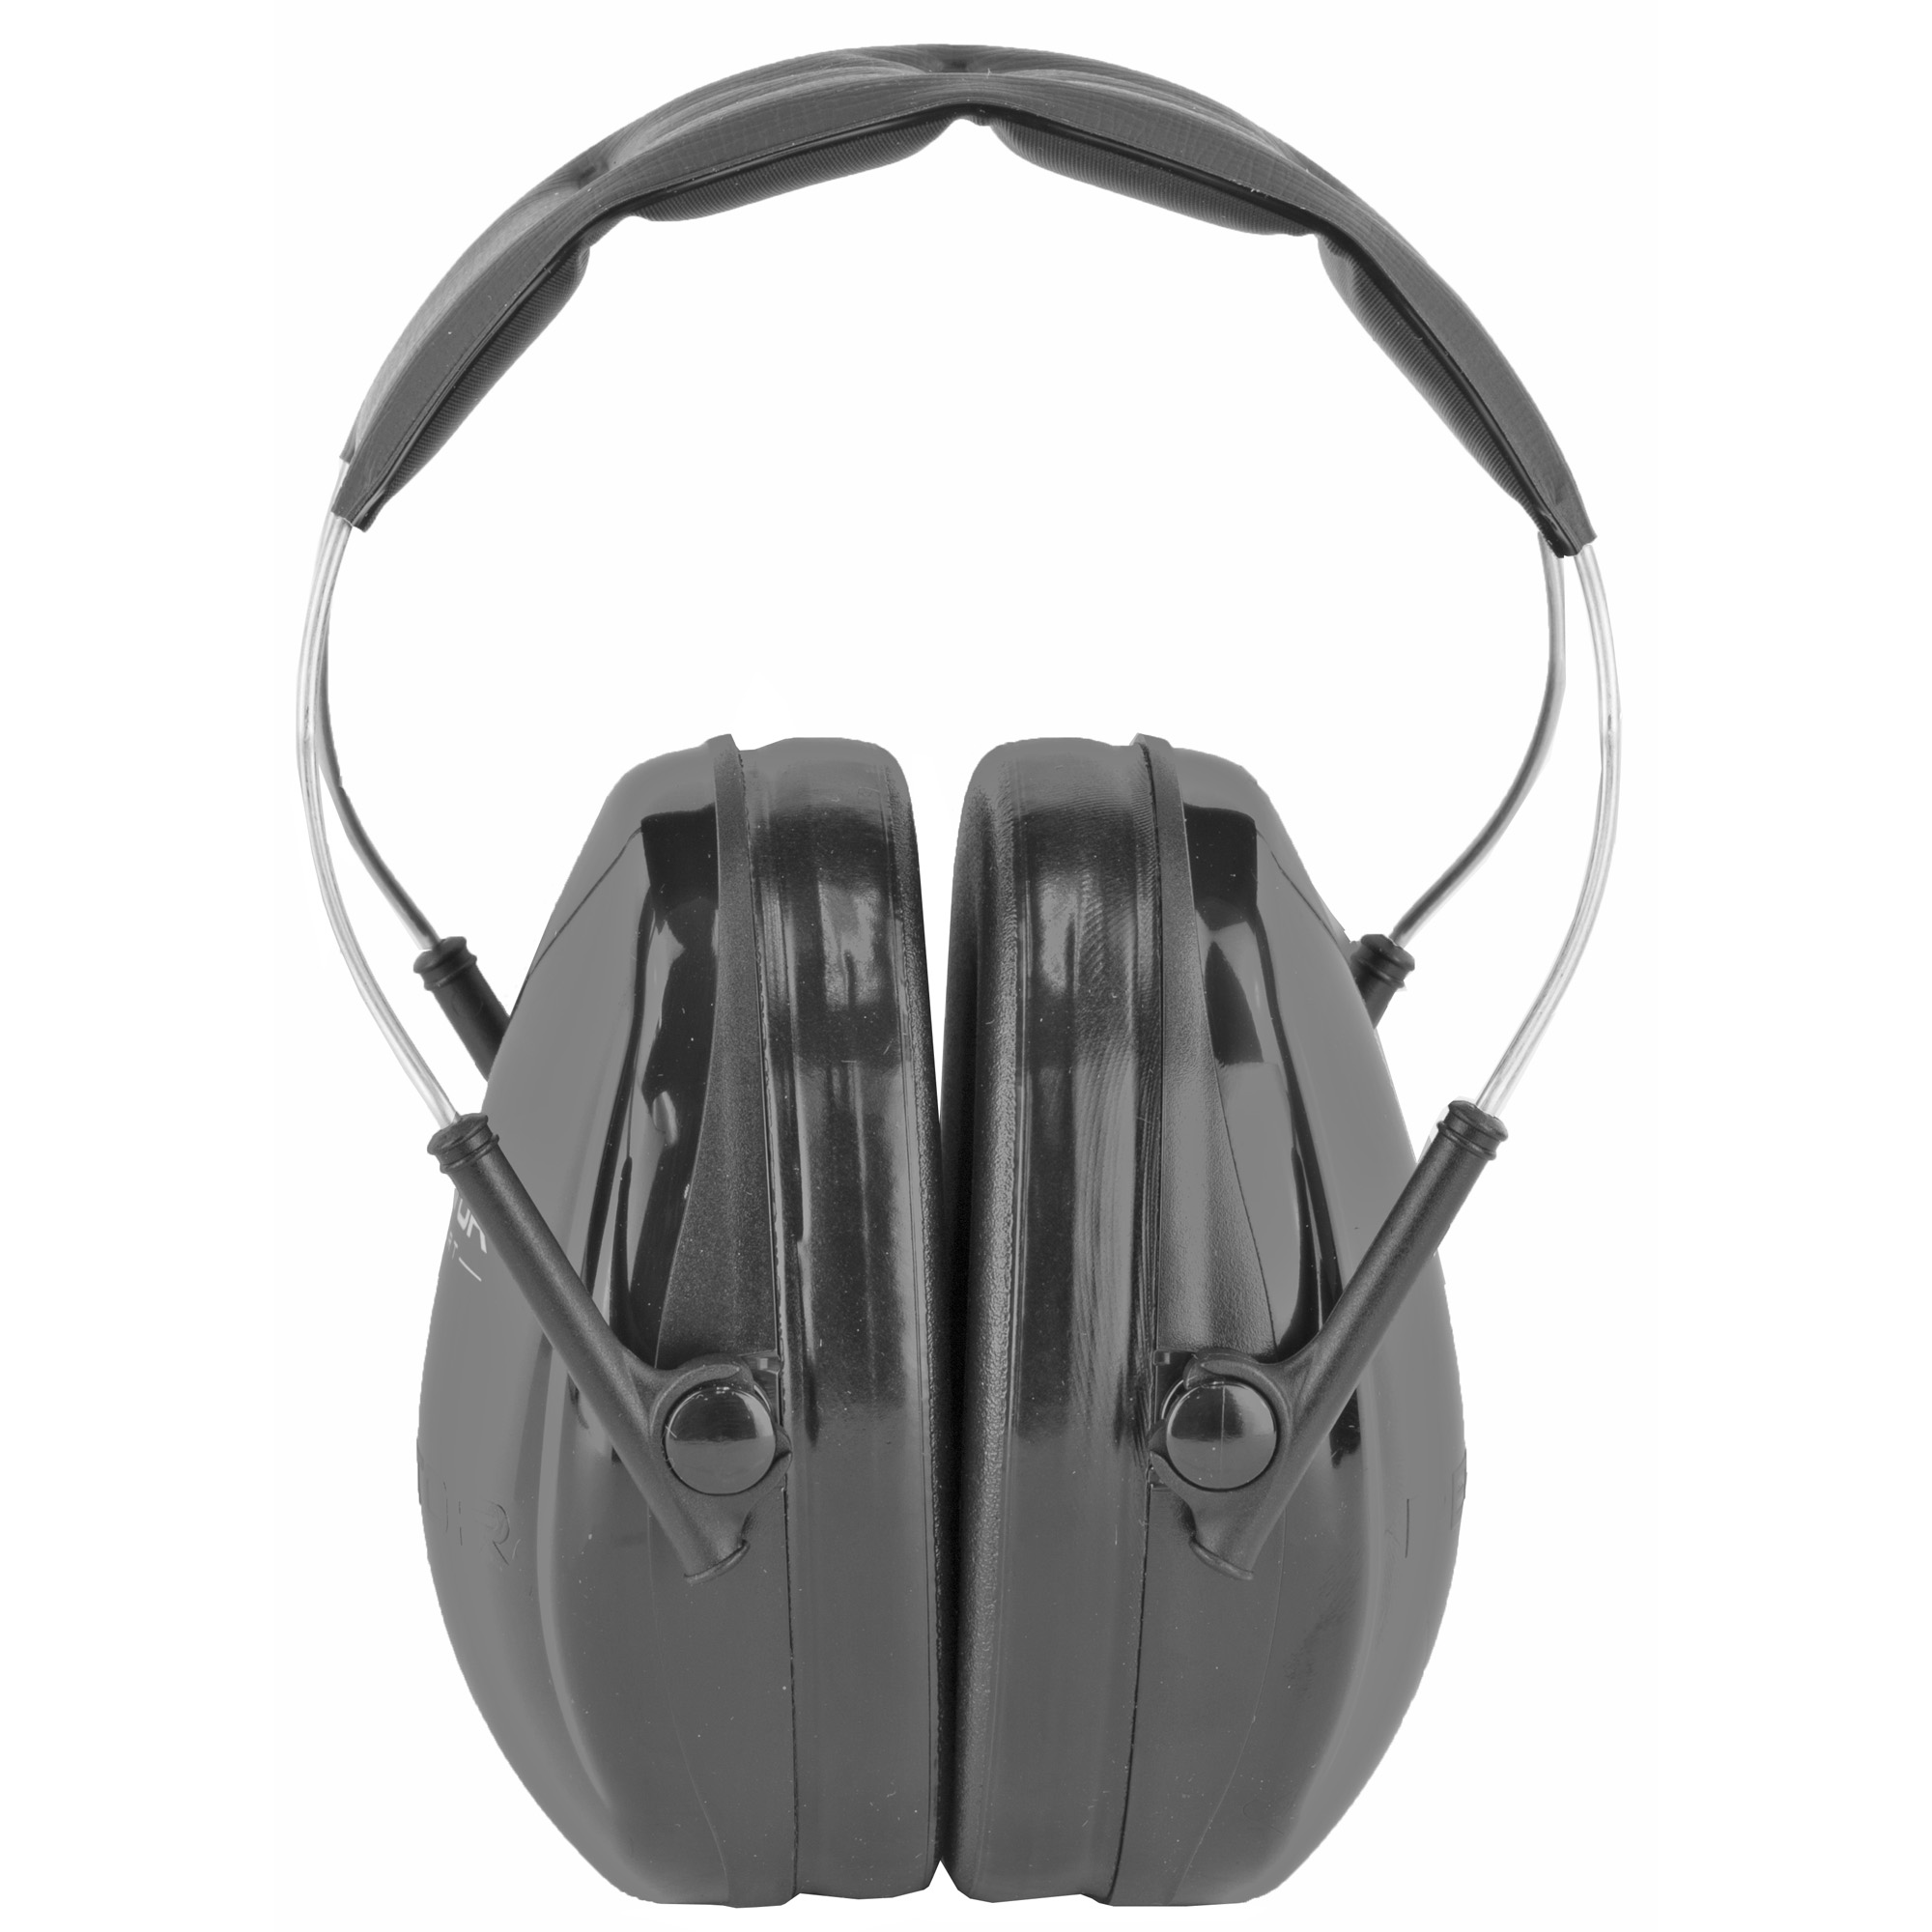 """The Small Earmuff is easily adjustable for a comfortable fit and sized for youth and smaller adults. With a noise reduction rating (NRR) of 22 dB"""" these muffs are ideal for Range Use"""" Hunting"""" Sporting Events"""" or any other loud environment where hearing protection is desired."""